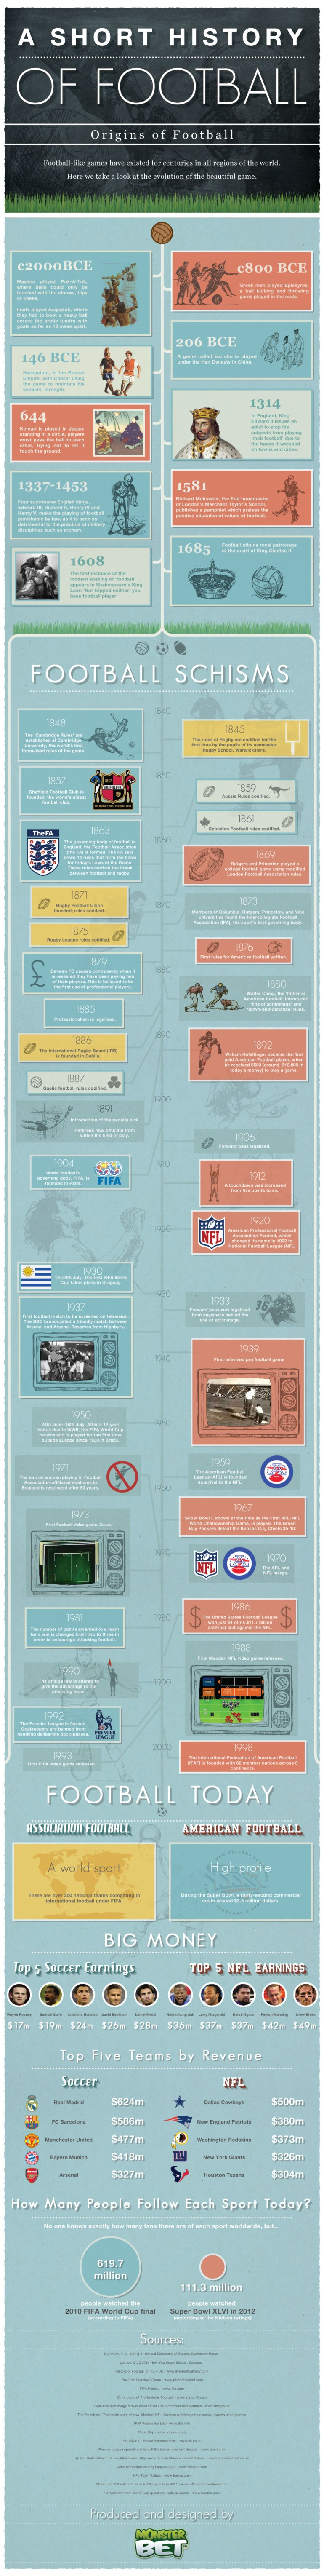 A Brief History of Football